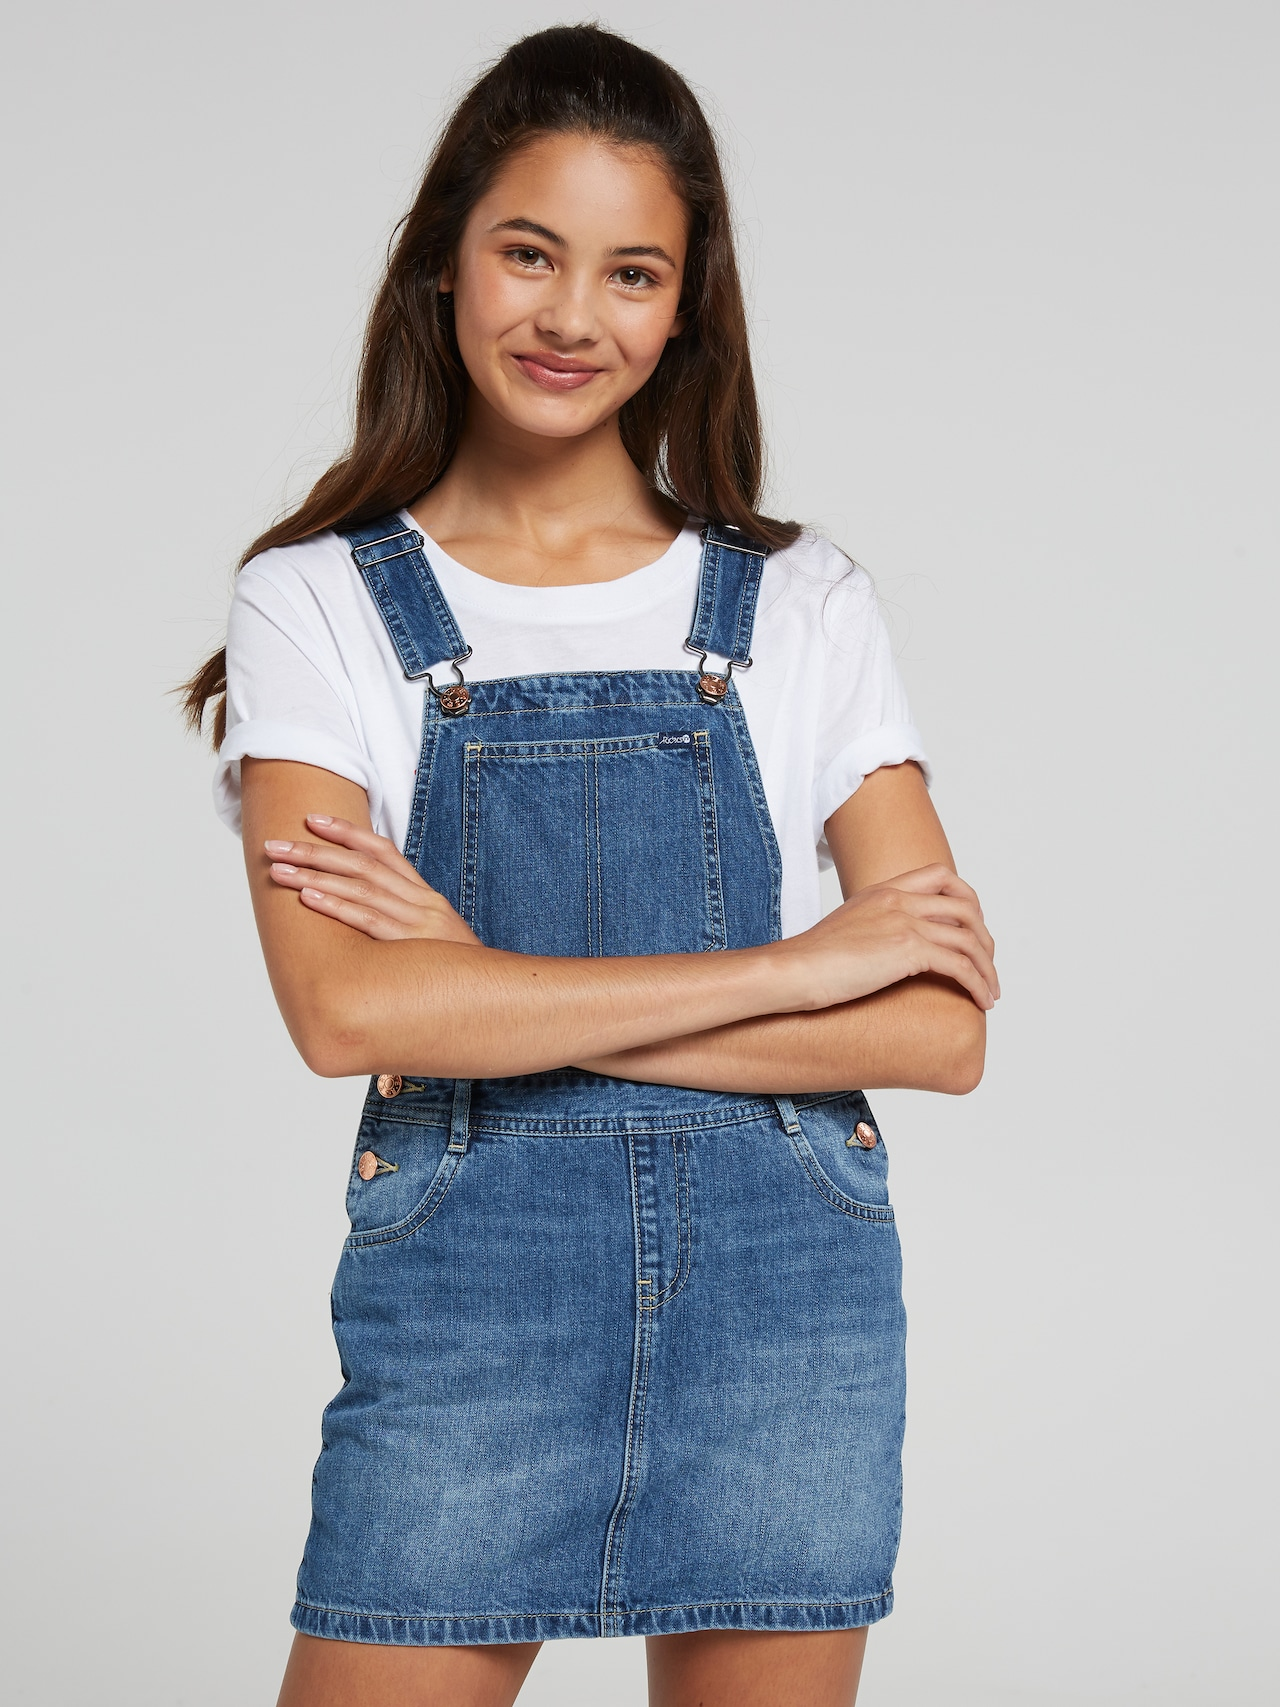 fashionable patterns limited quantity really cheap Just Jeans GIRLS RIDERS DUNGAREE DRESS